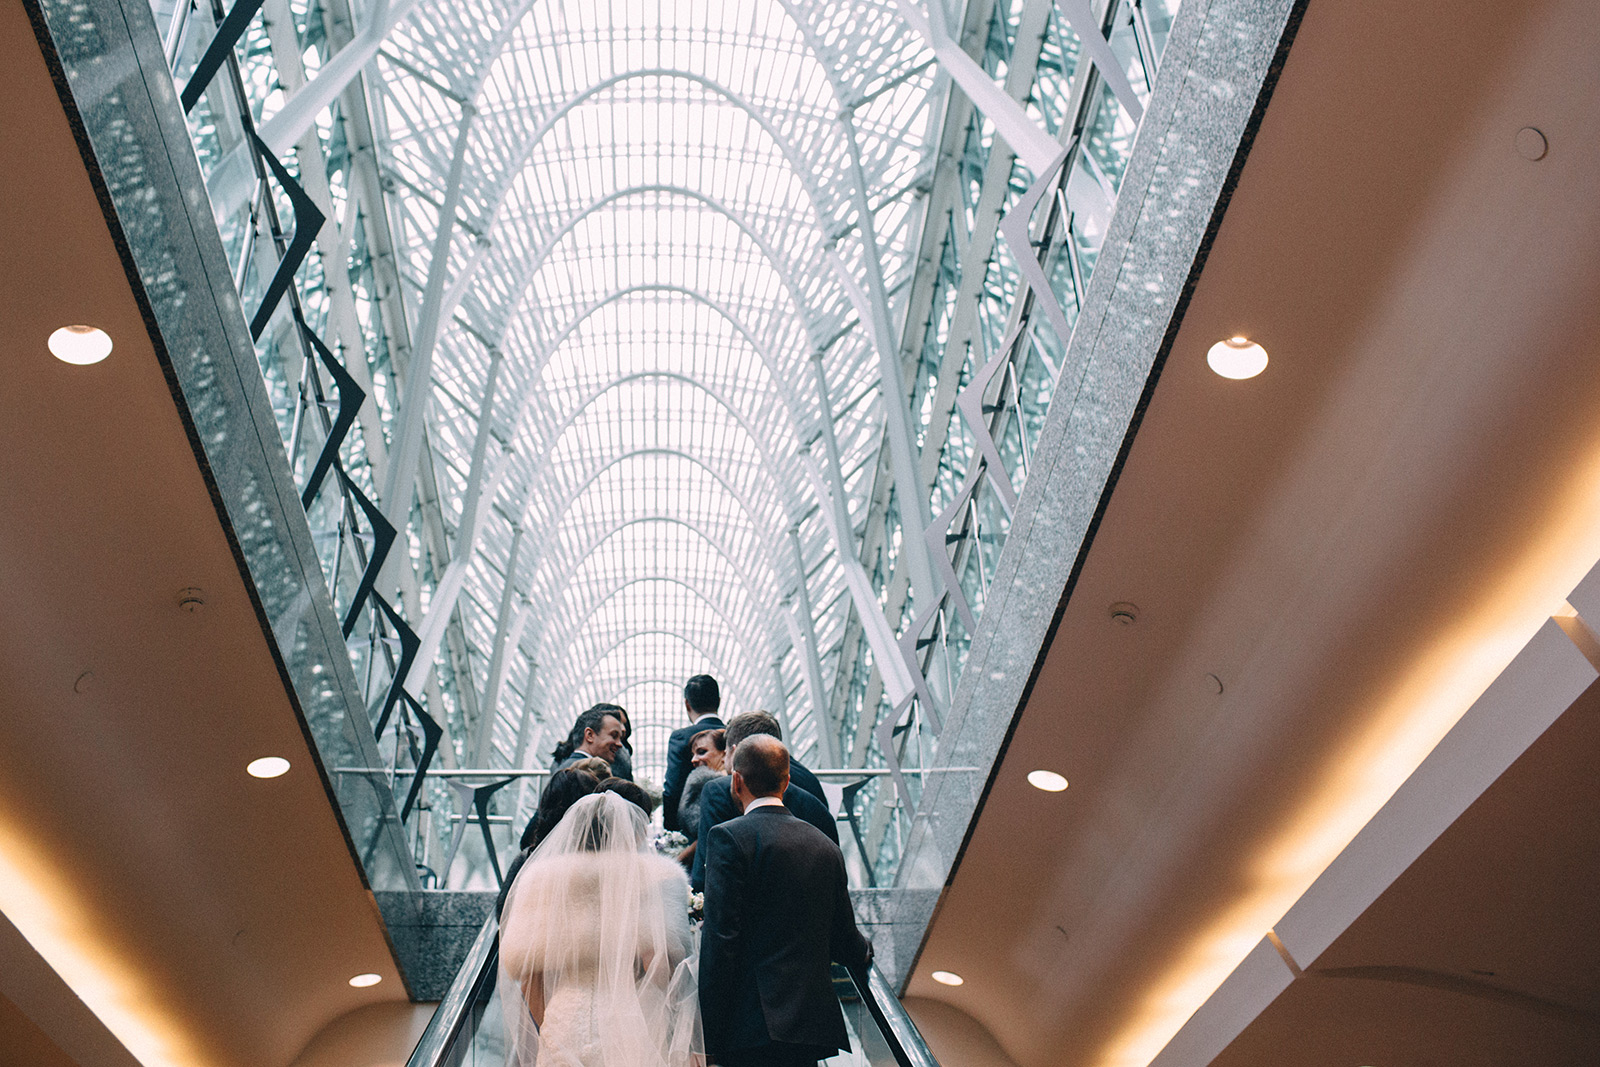 One-King-West-Toronto-wedding-photography_Sam-Wong-of-Visual-Cravings_KnR-14